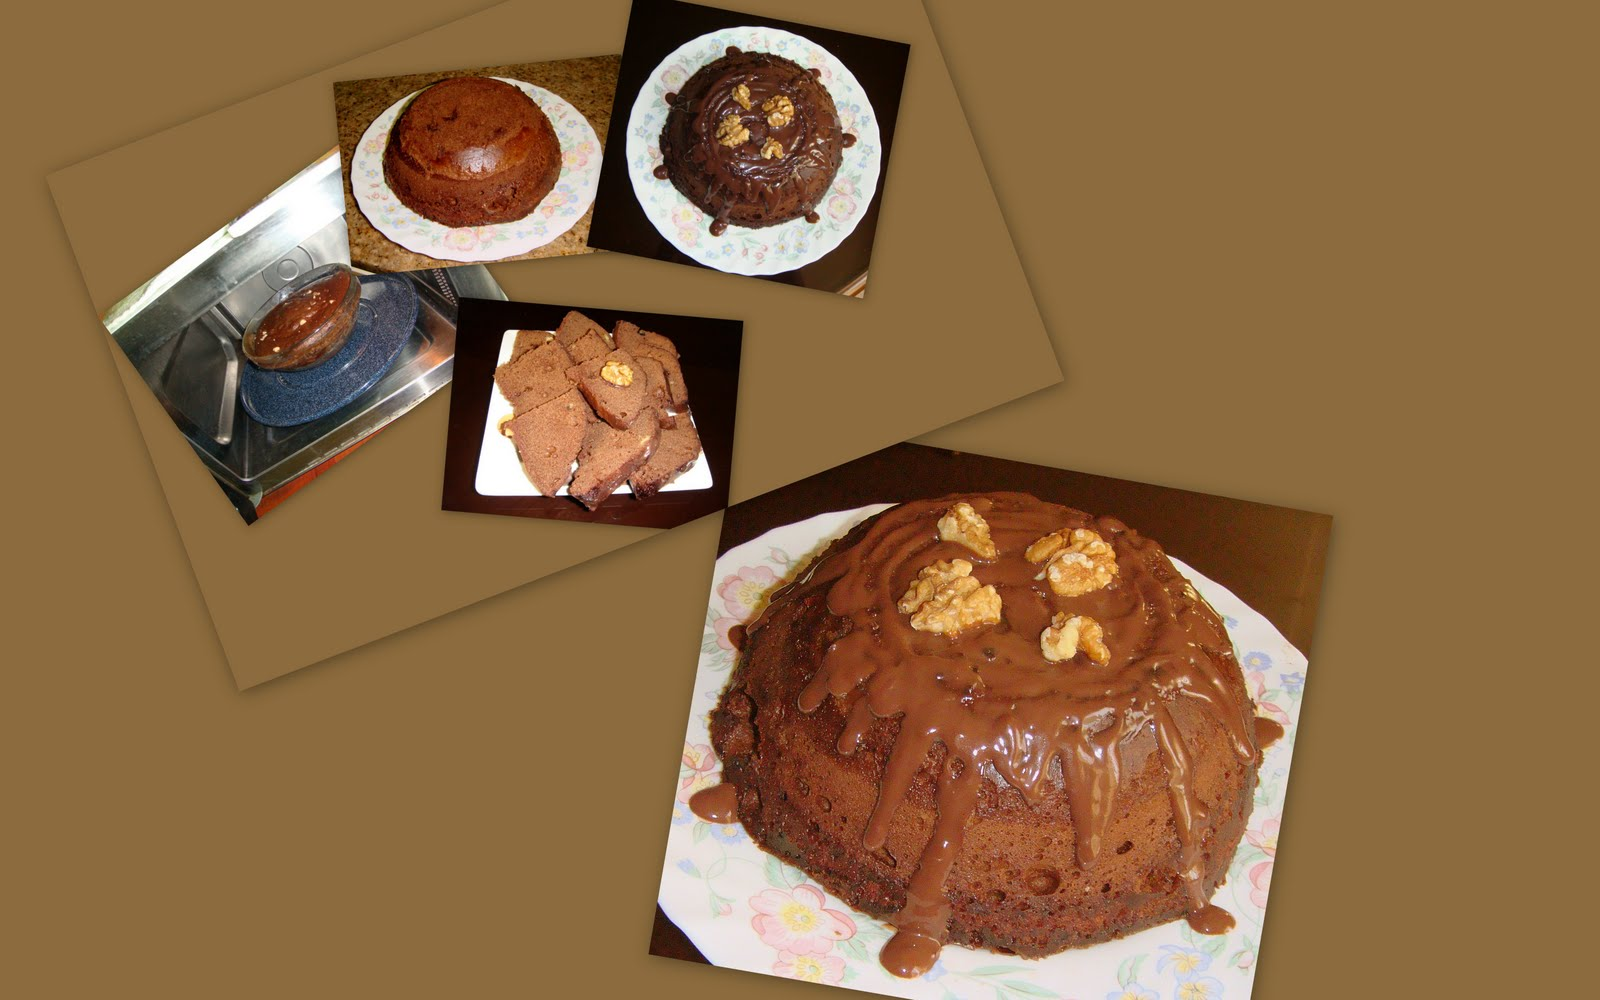 Chocolate Walnut Sponge Cake Recipe